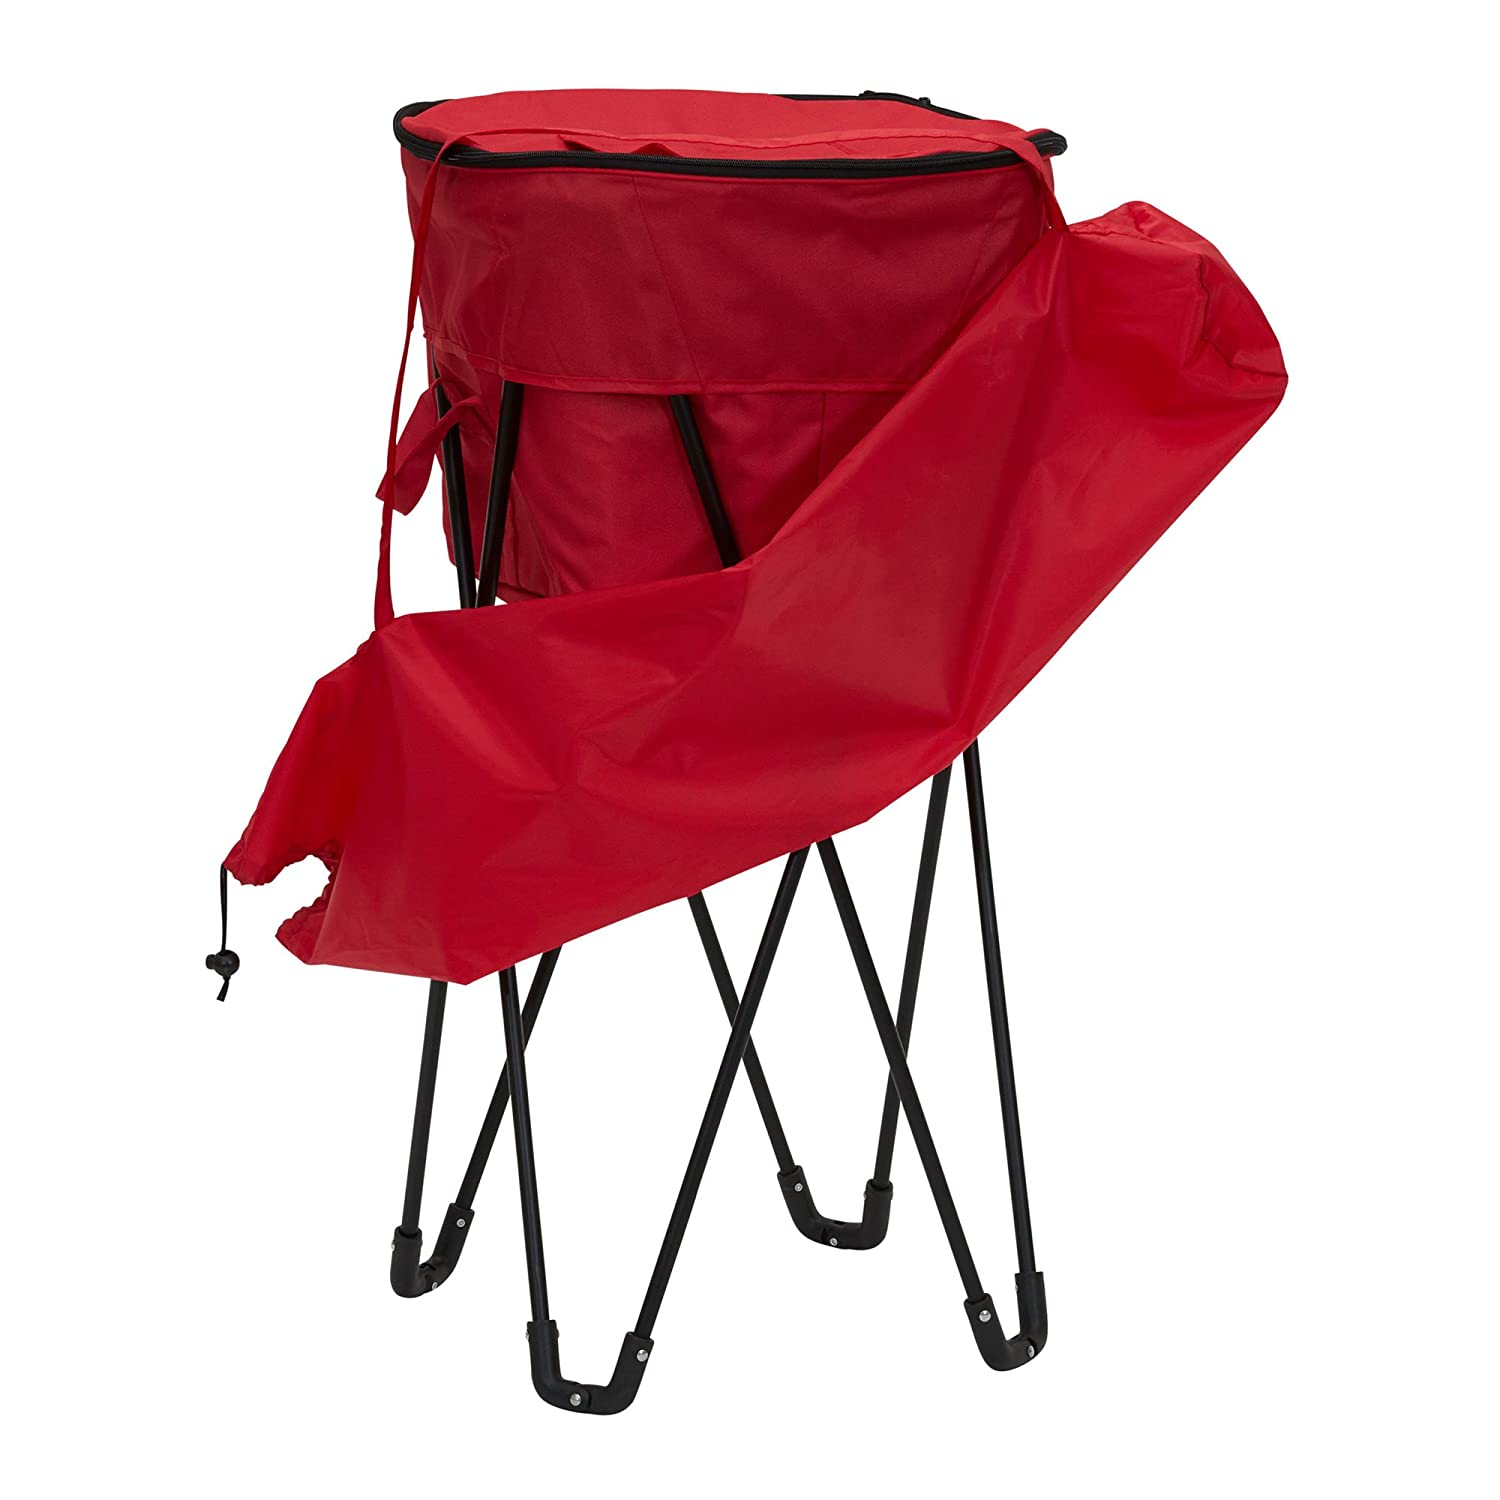 Household Essentials 2170-1 Standing Ice Cooler Red